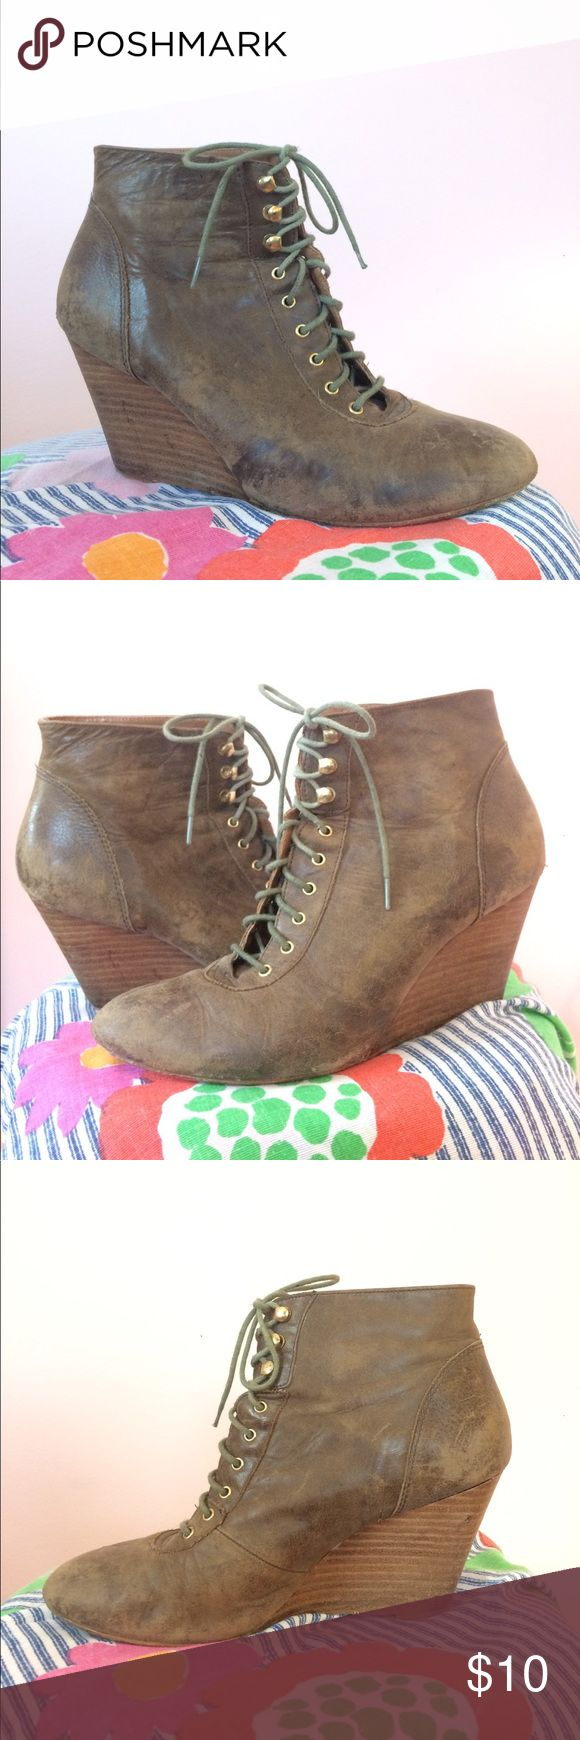 Steve Madden Leather Lace-Up Wedge Booties 8.5 These vintage-inspired earth green Steve Madden Wedge Boots are great with dresses or jeans, any season. Gently worn. Steve Madden Shoes Ankle Boots & Booties